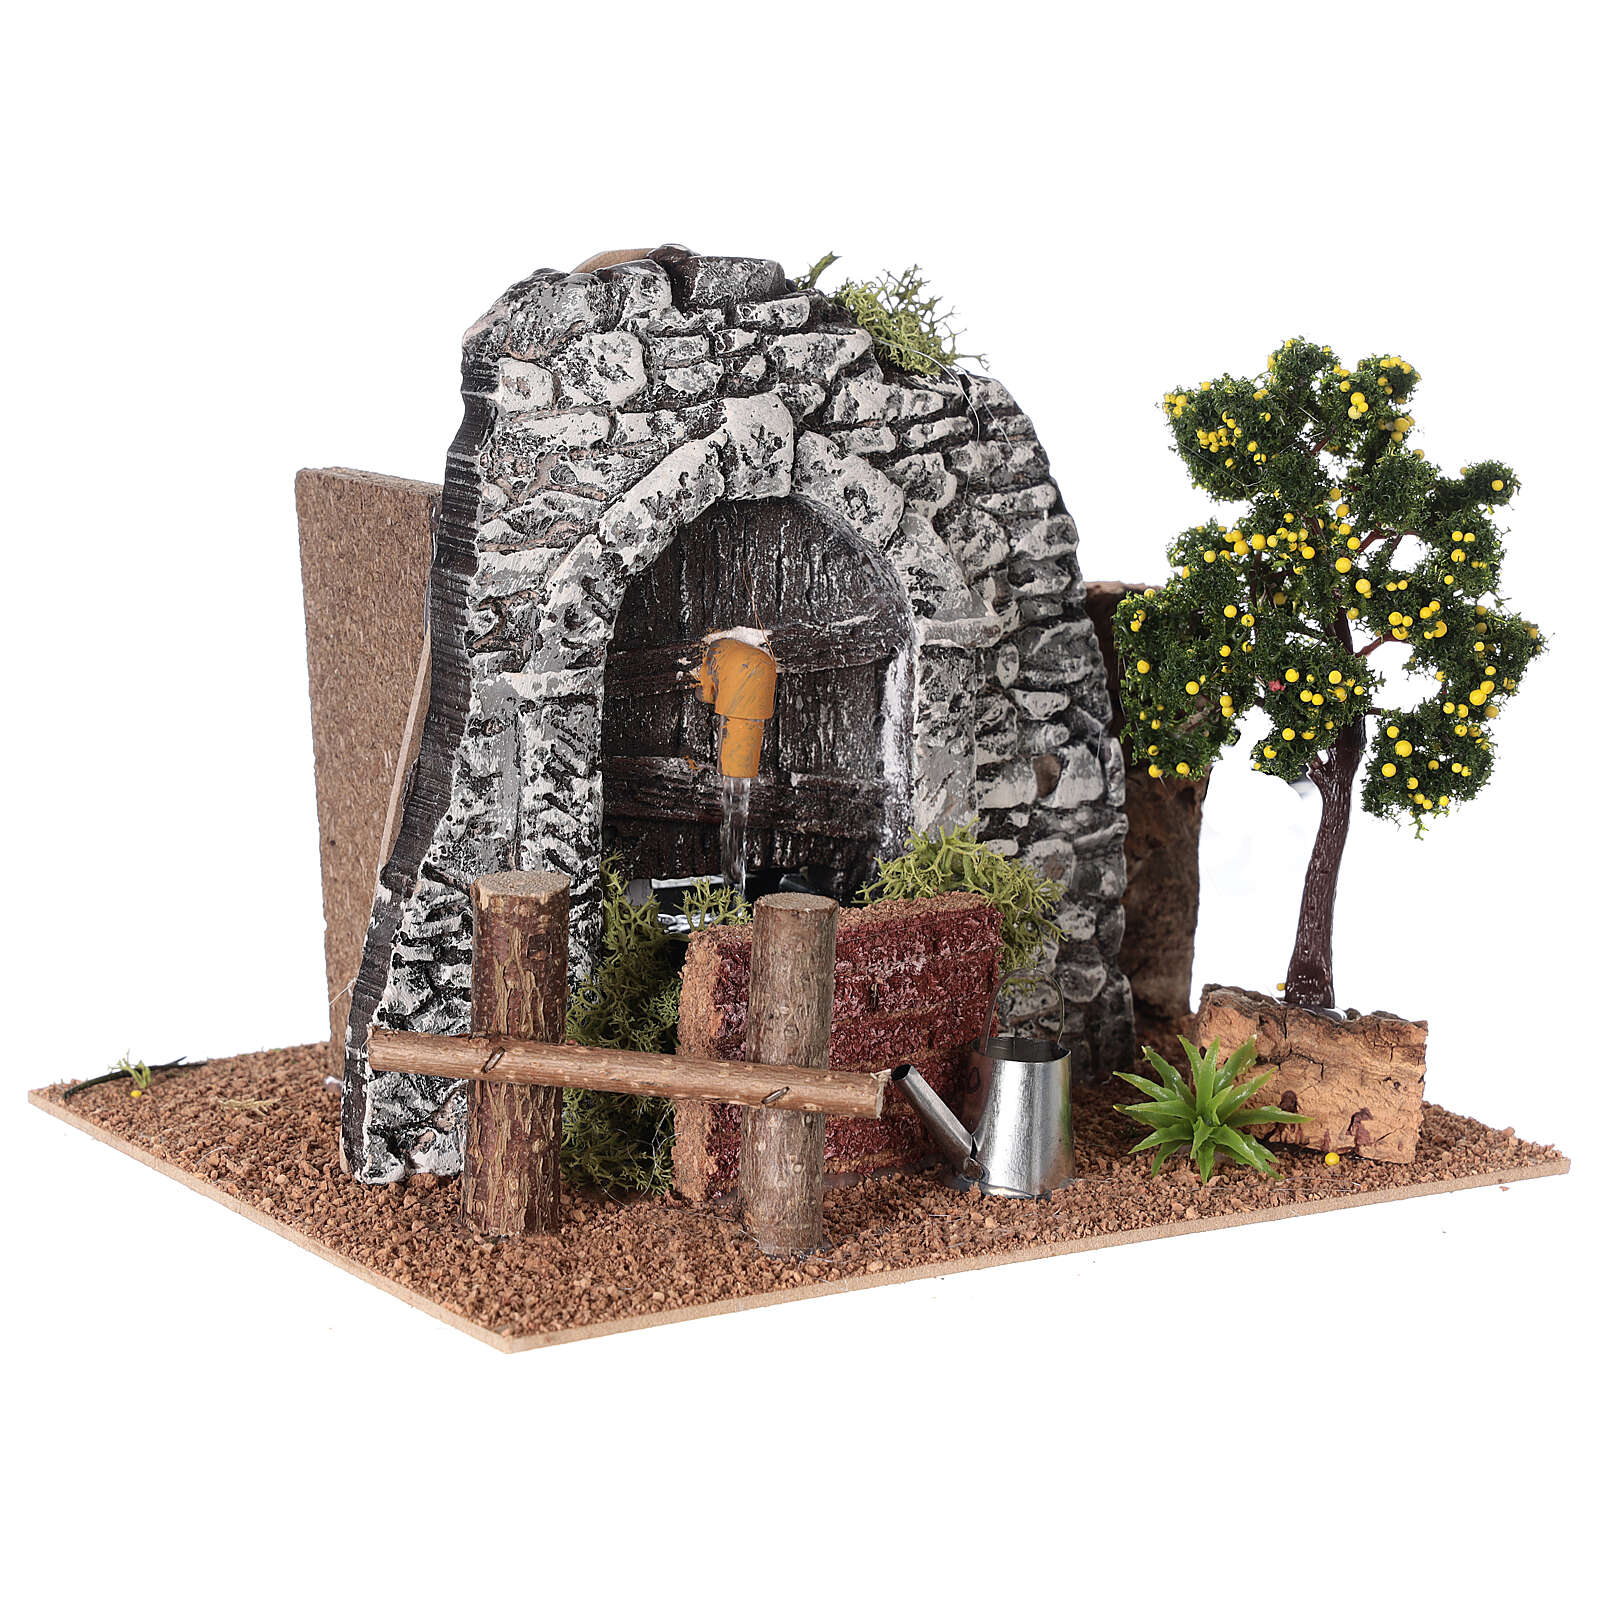 Plaster fountain with tree for Nativity scene 20x15x15 cm 4